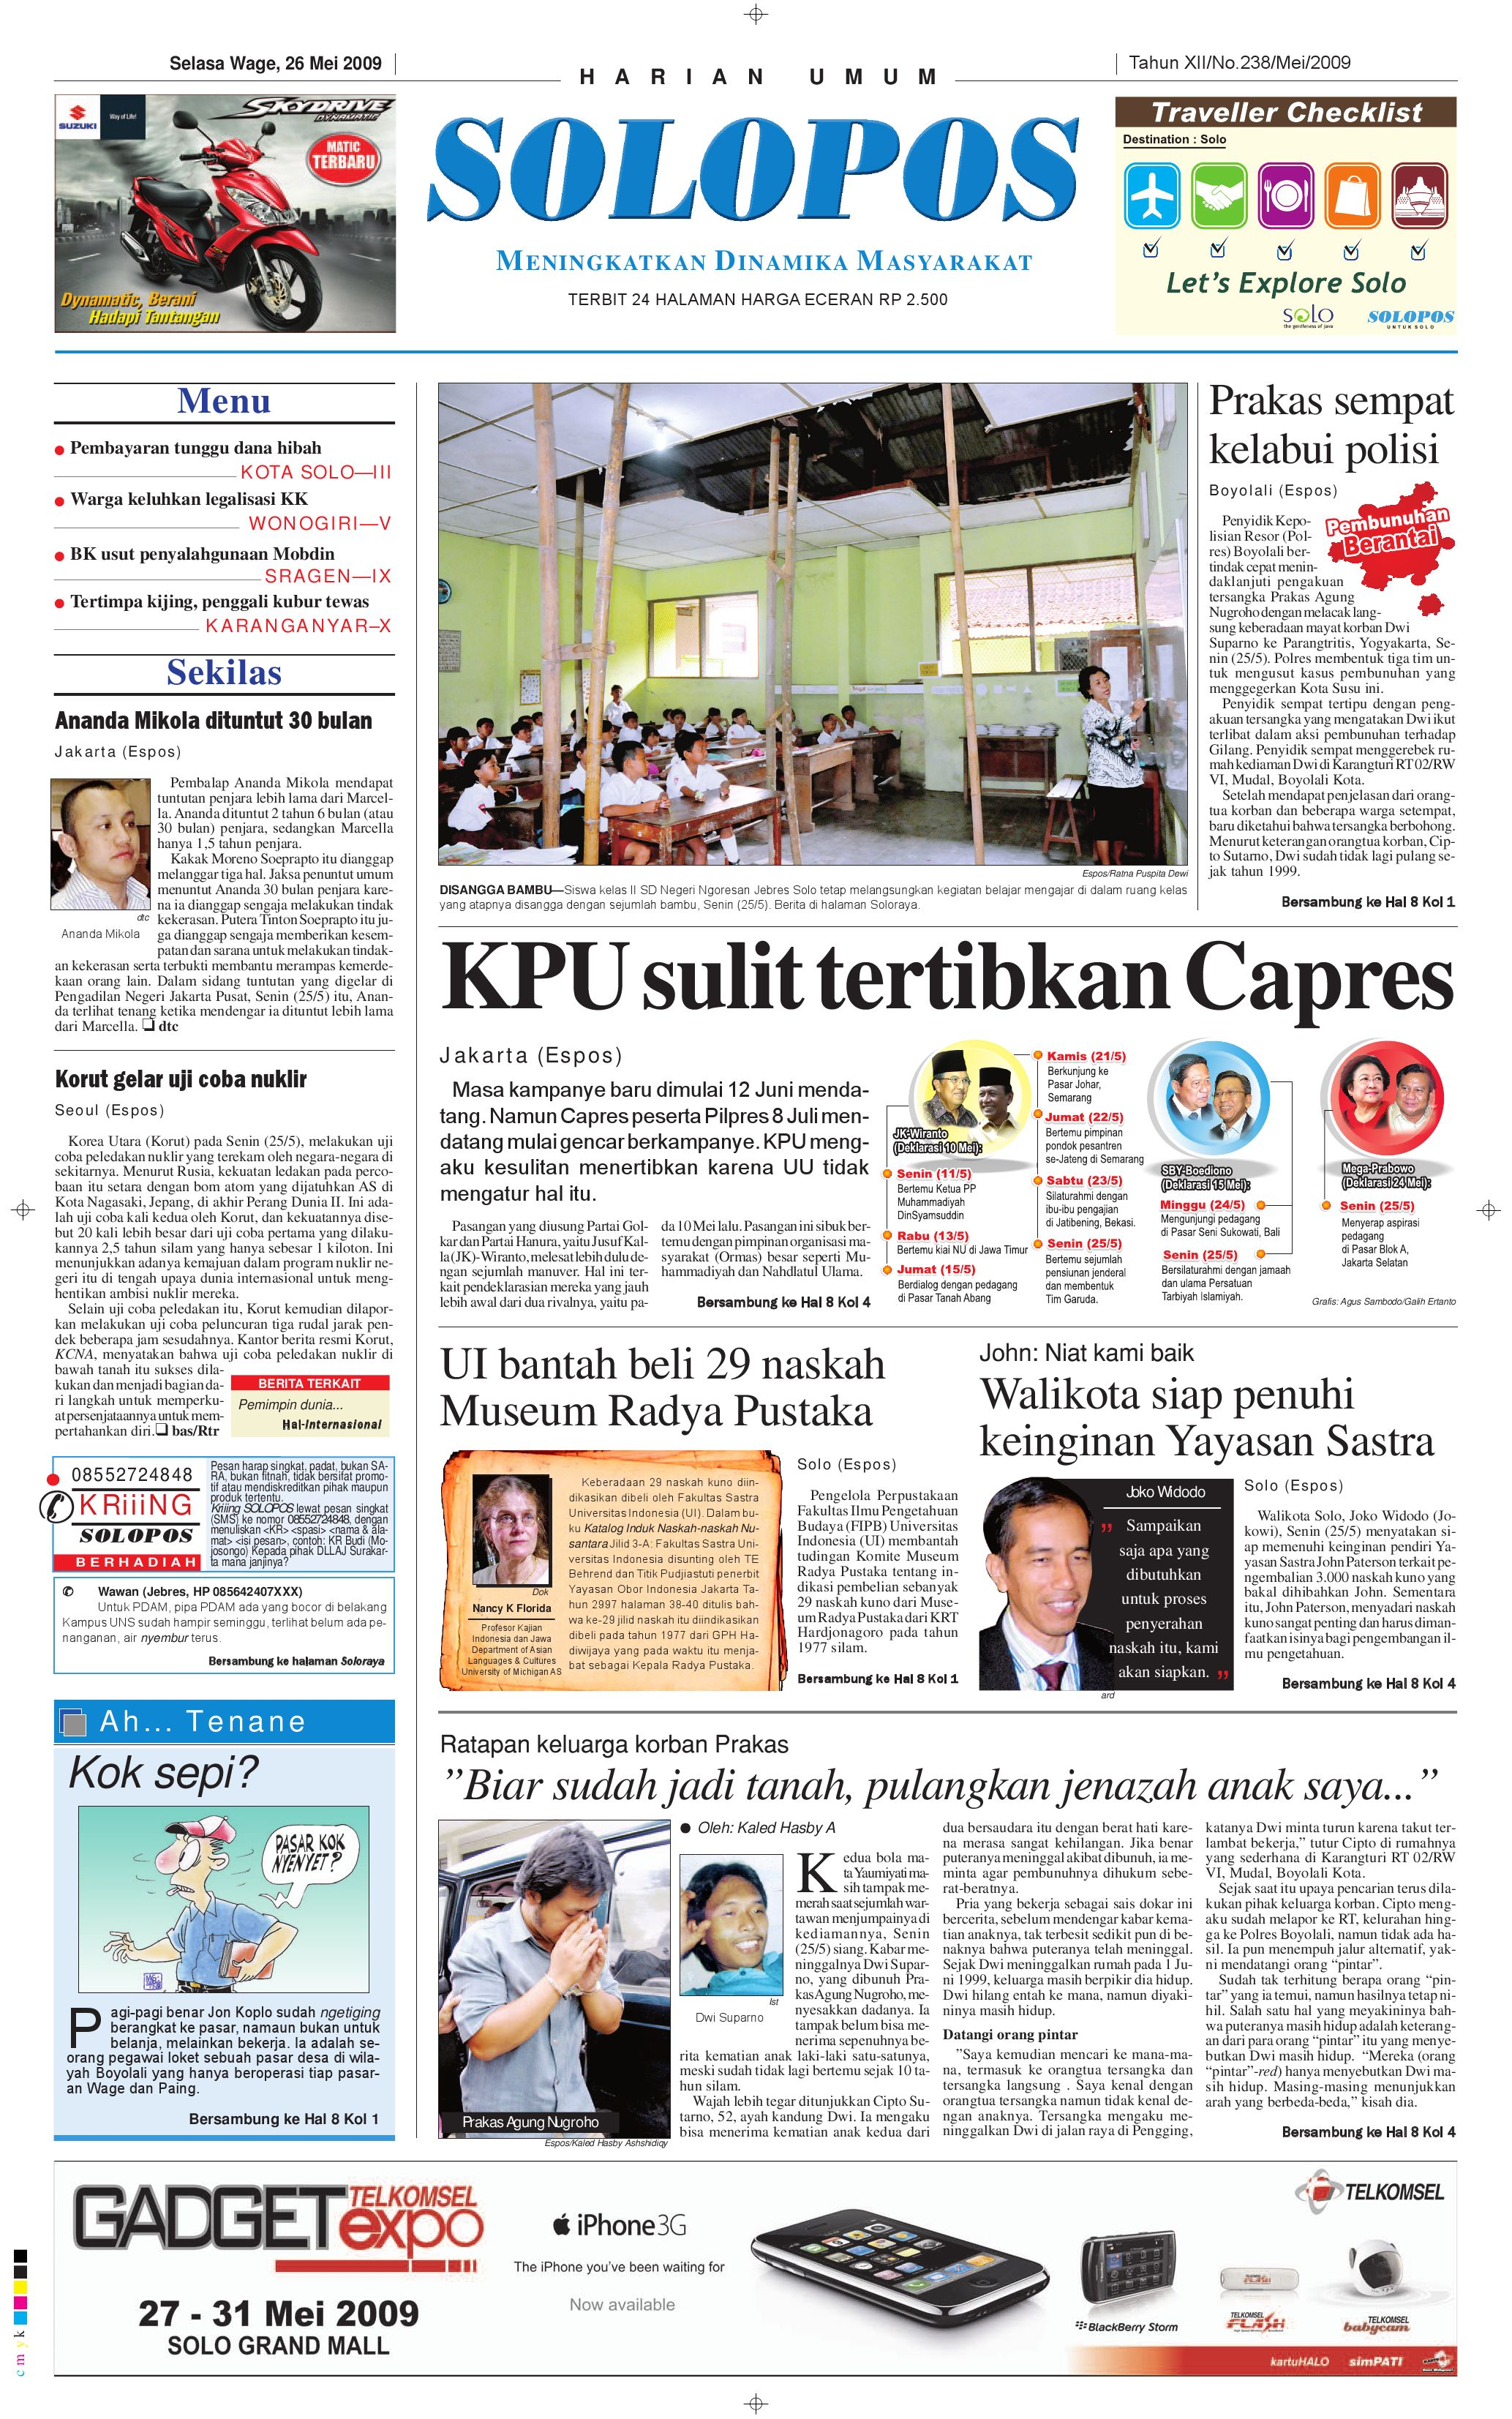 SOLOPOS 26 Mei 2009 By Aksara Solopos PT Issuu